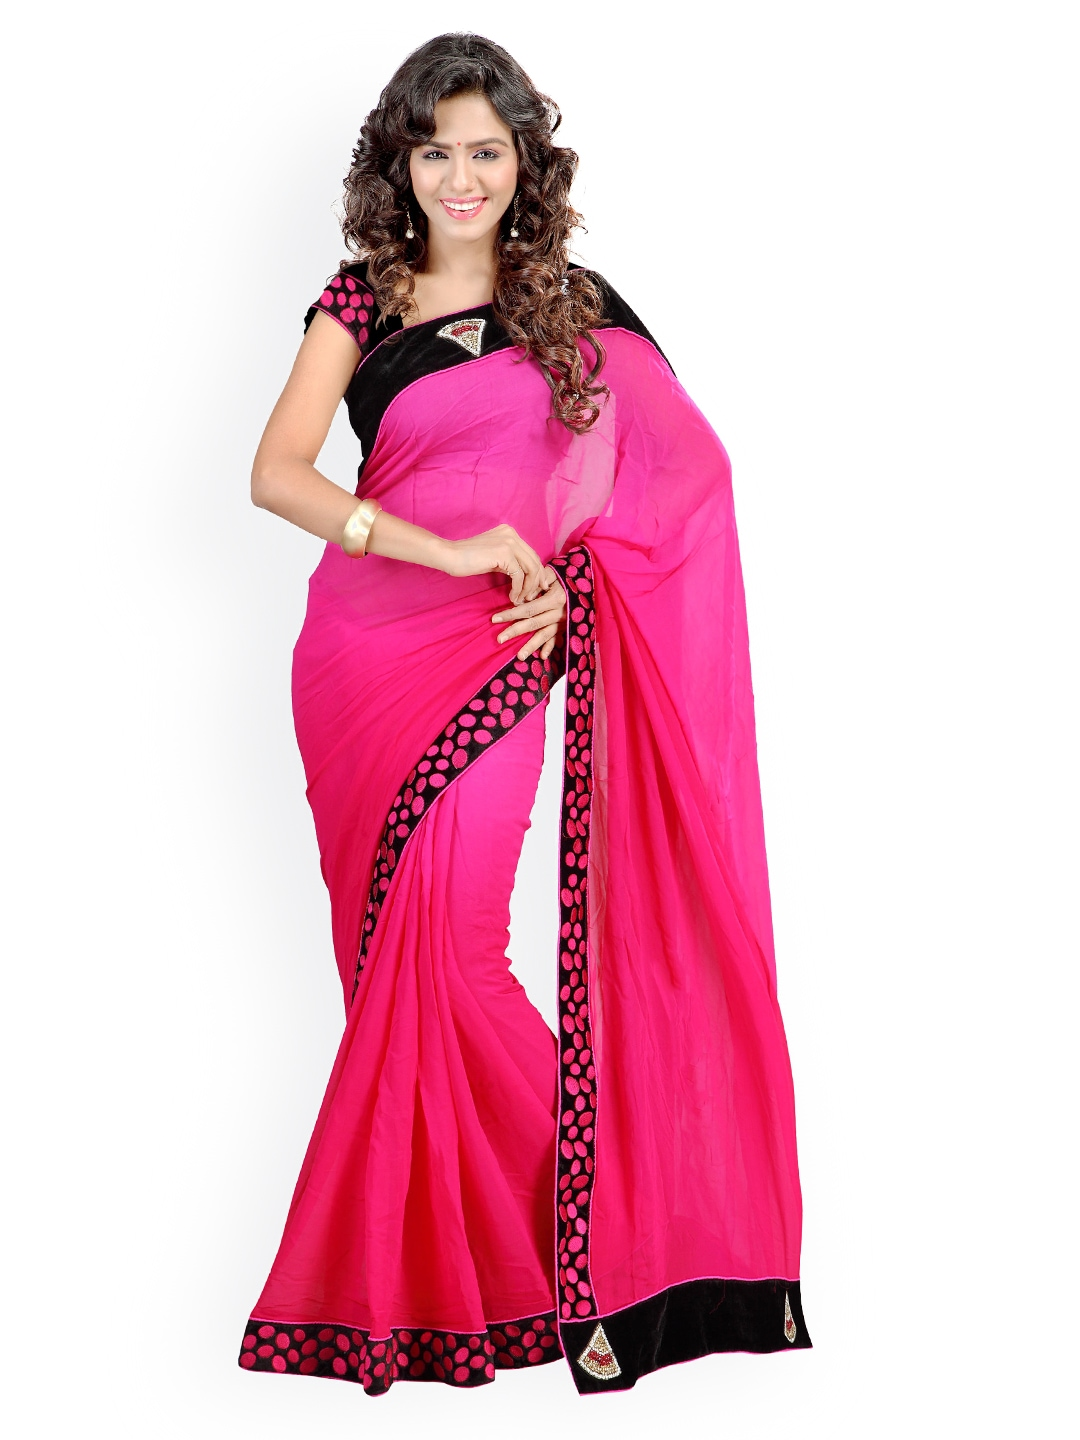 Myntra Kashish Lifestyle Pink Georgette Fashion Saree 793721 Buy Myntra Kashish Lifestyle